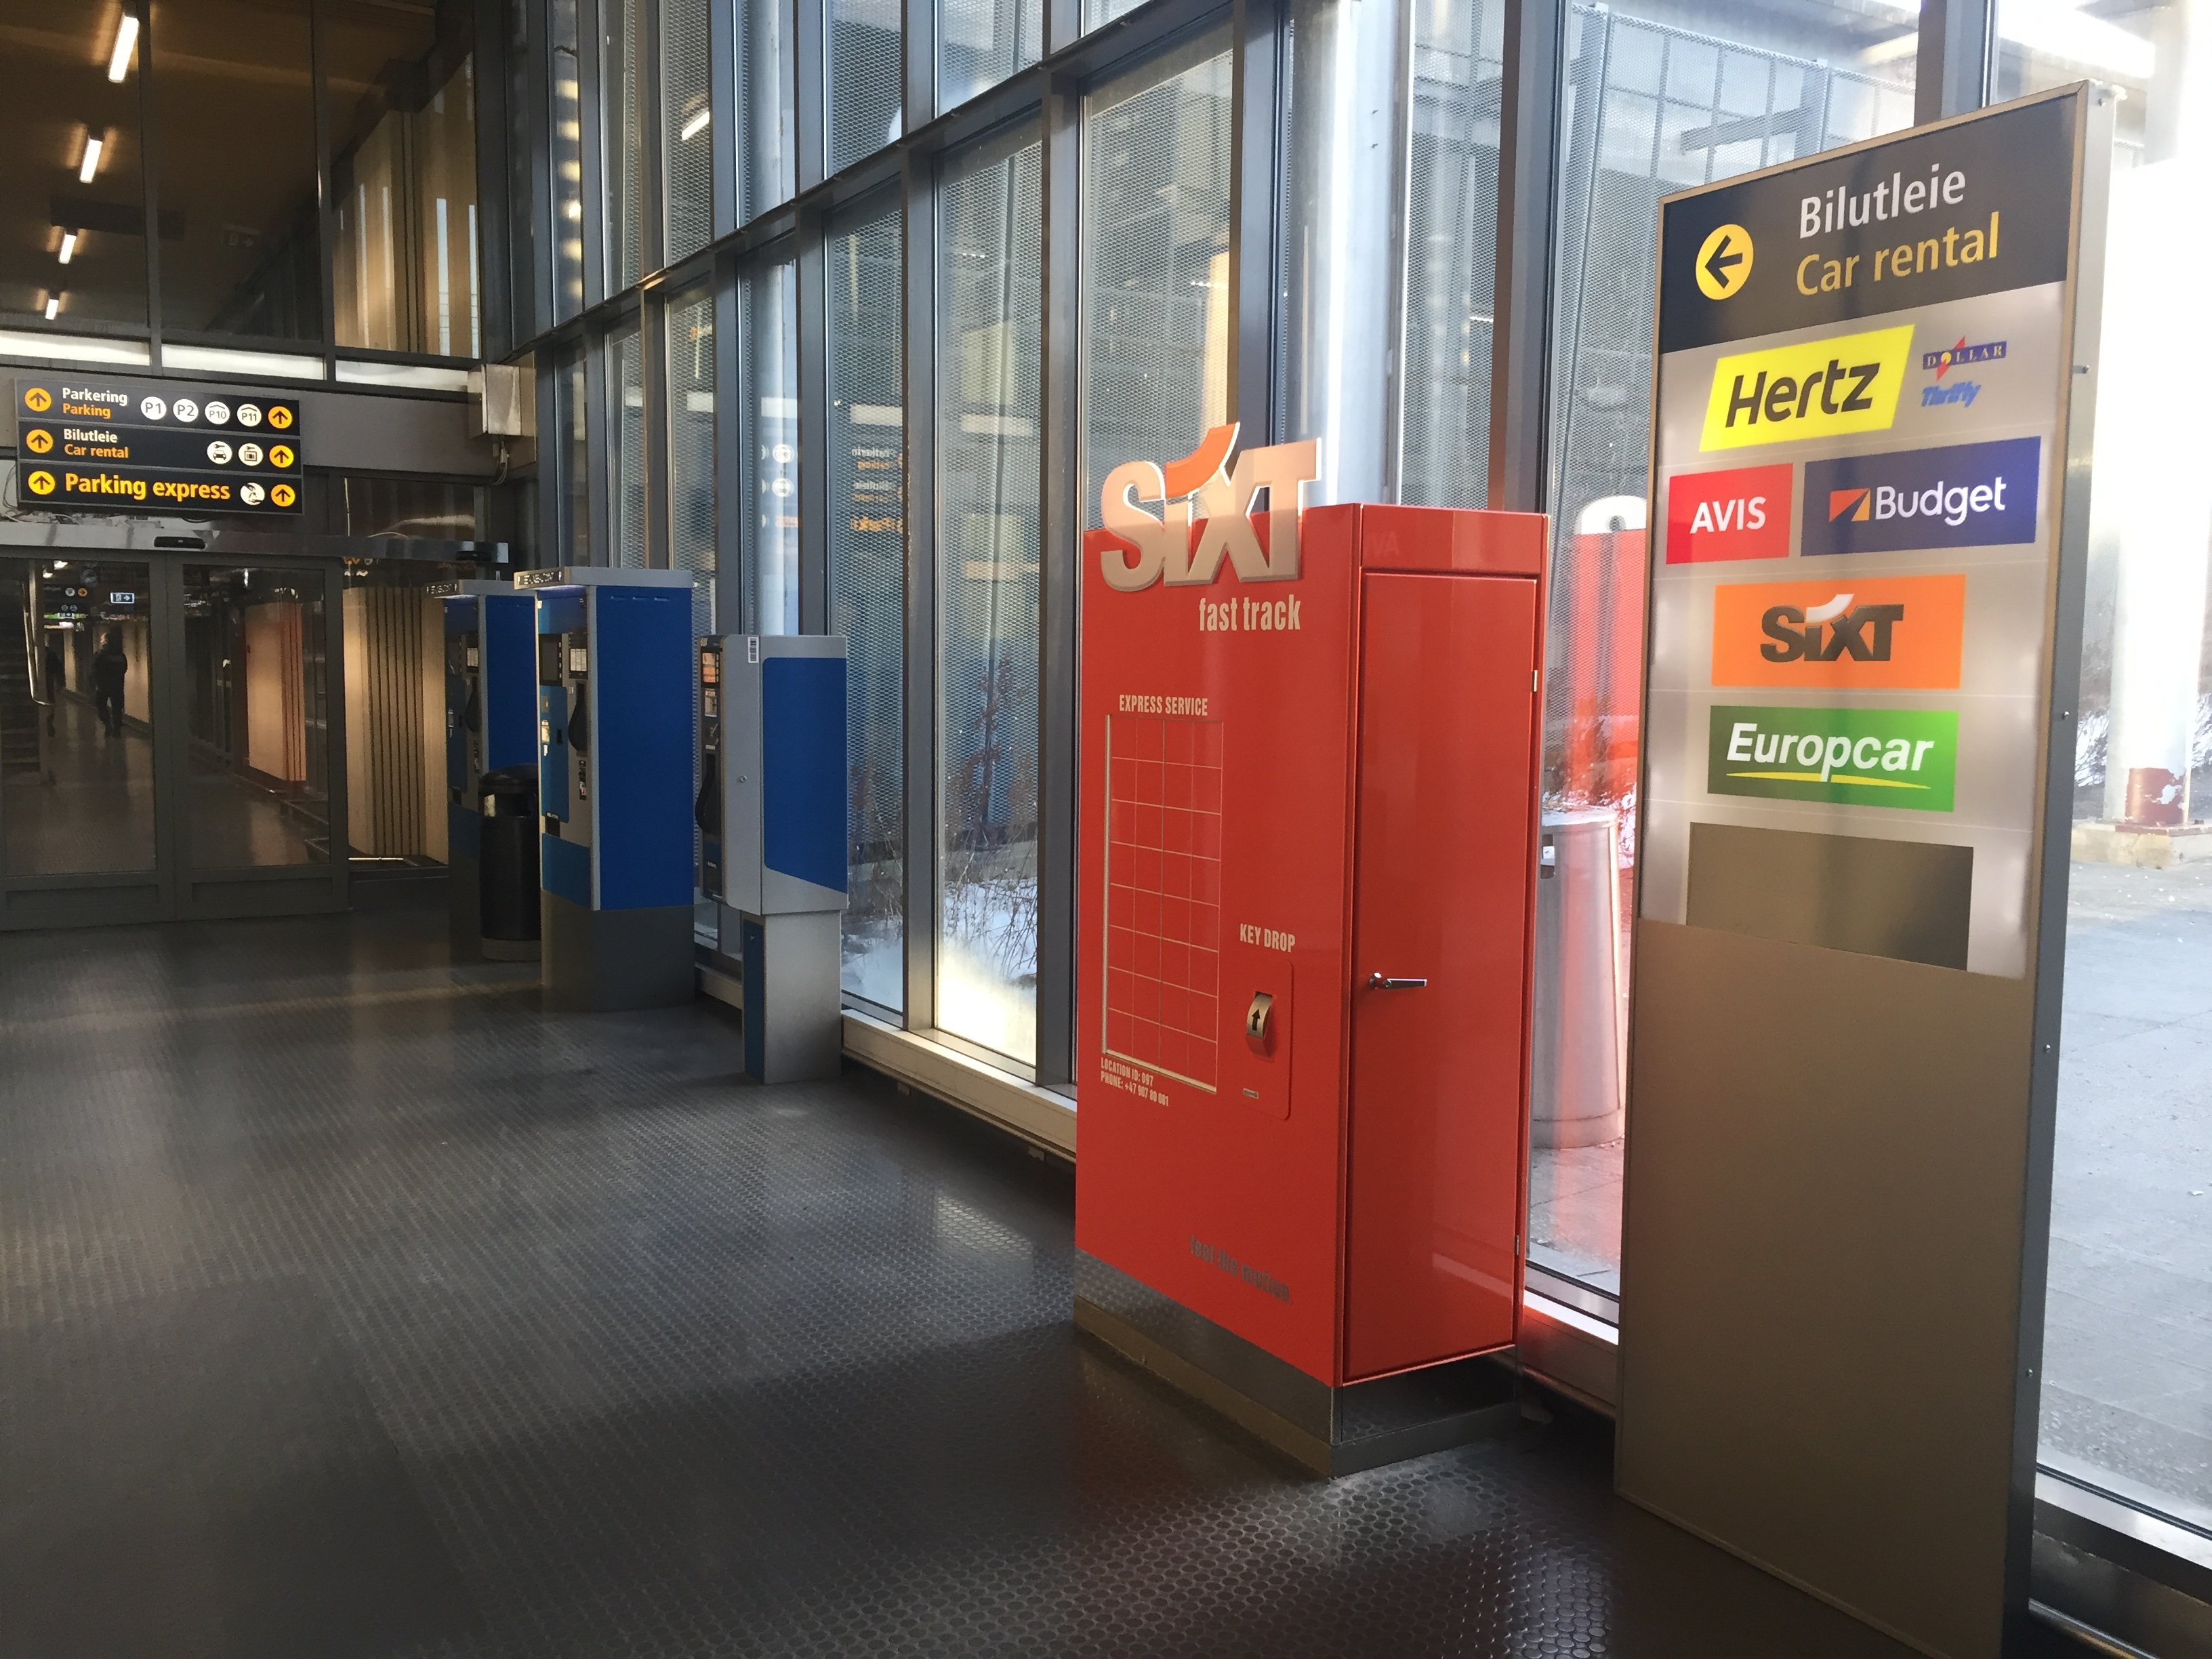 Sixt Oslo Airport 04.